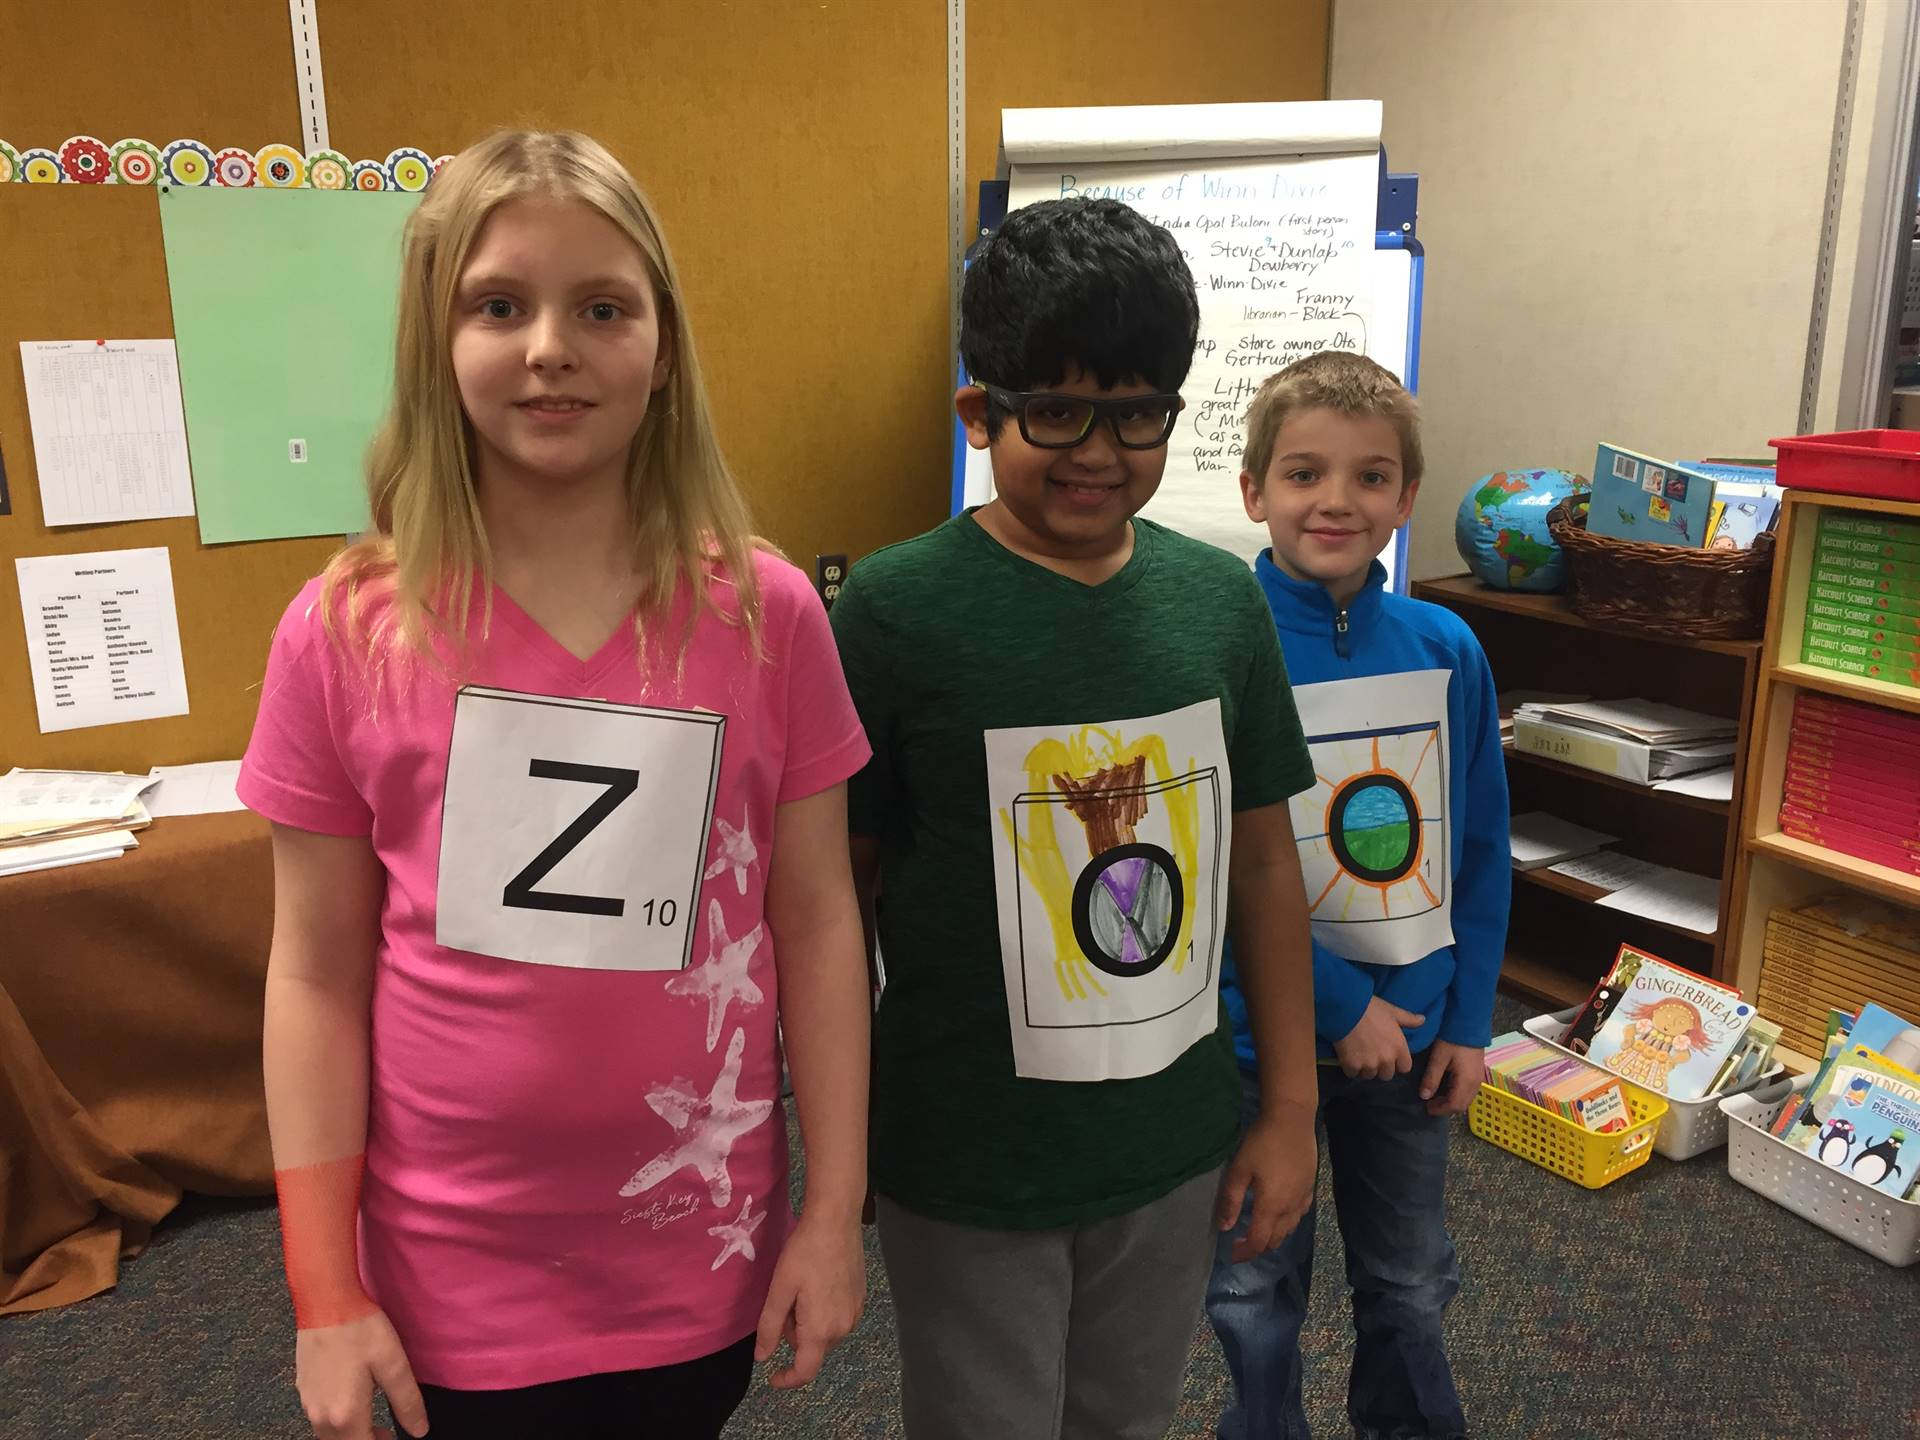 Dr. Seuss Scrabble Day